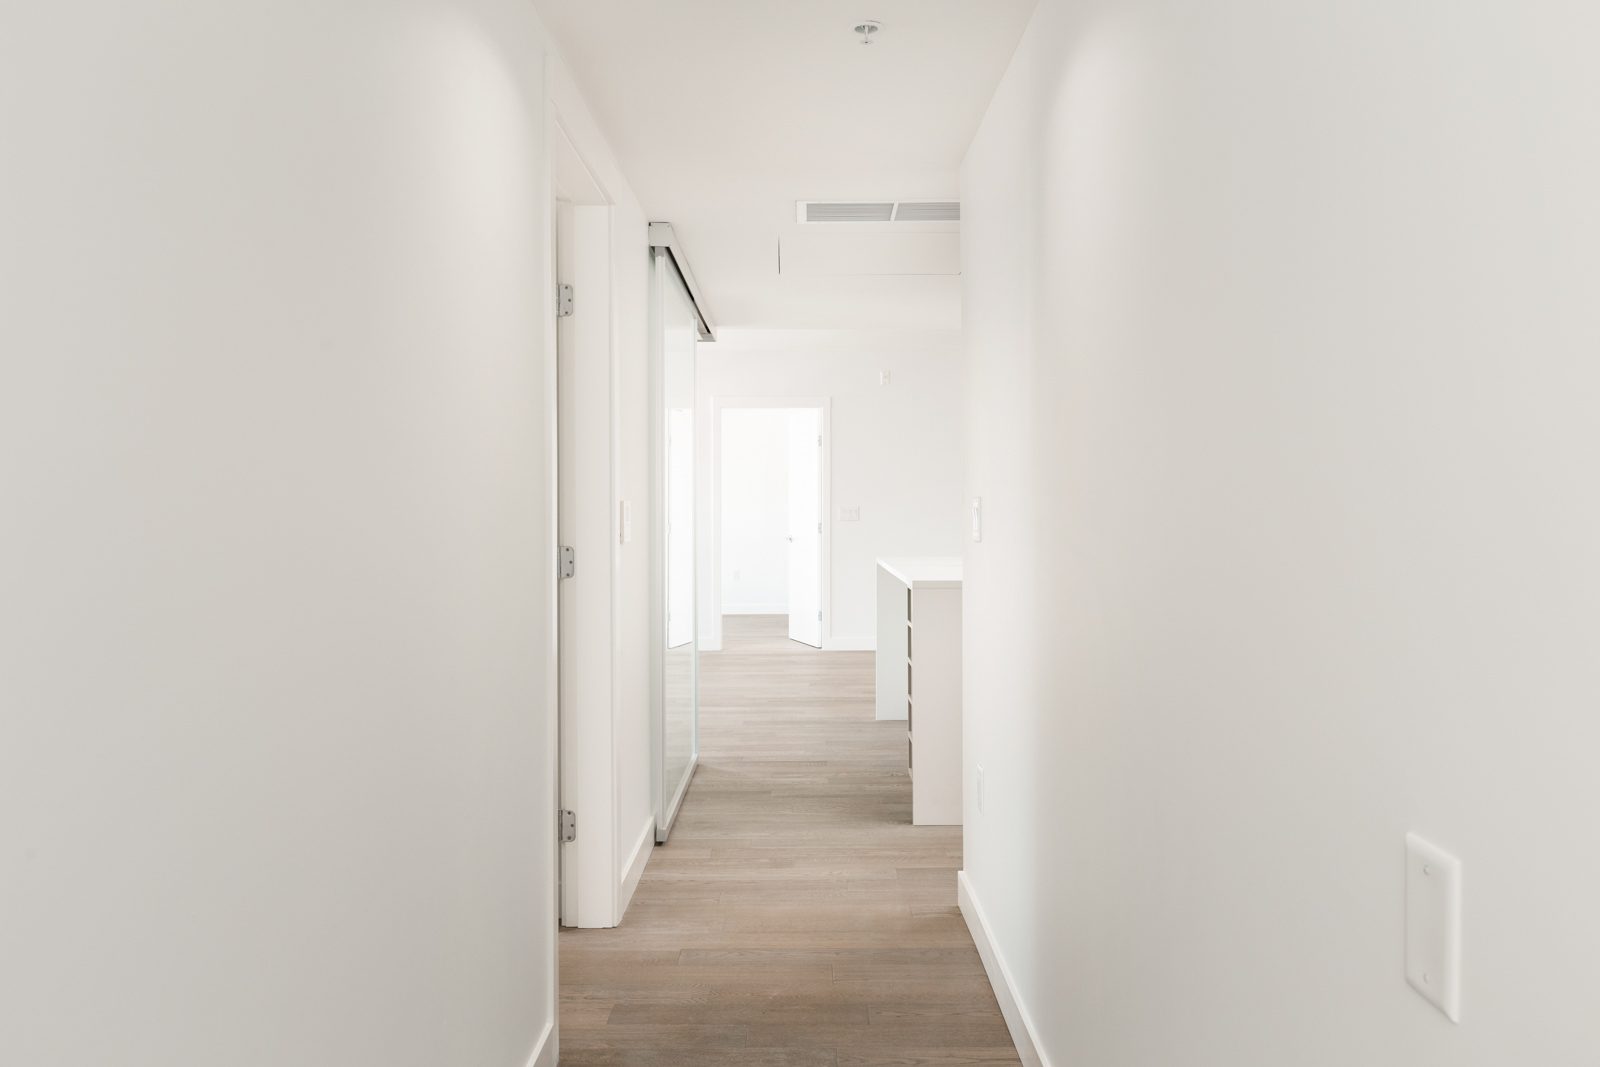 Interior hallway of Vancouver rental townhome in the Marpole community.